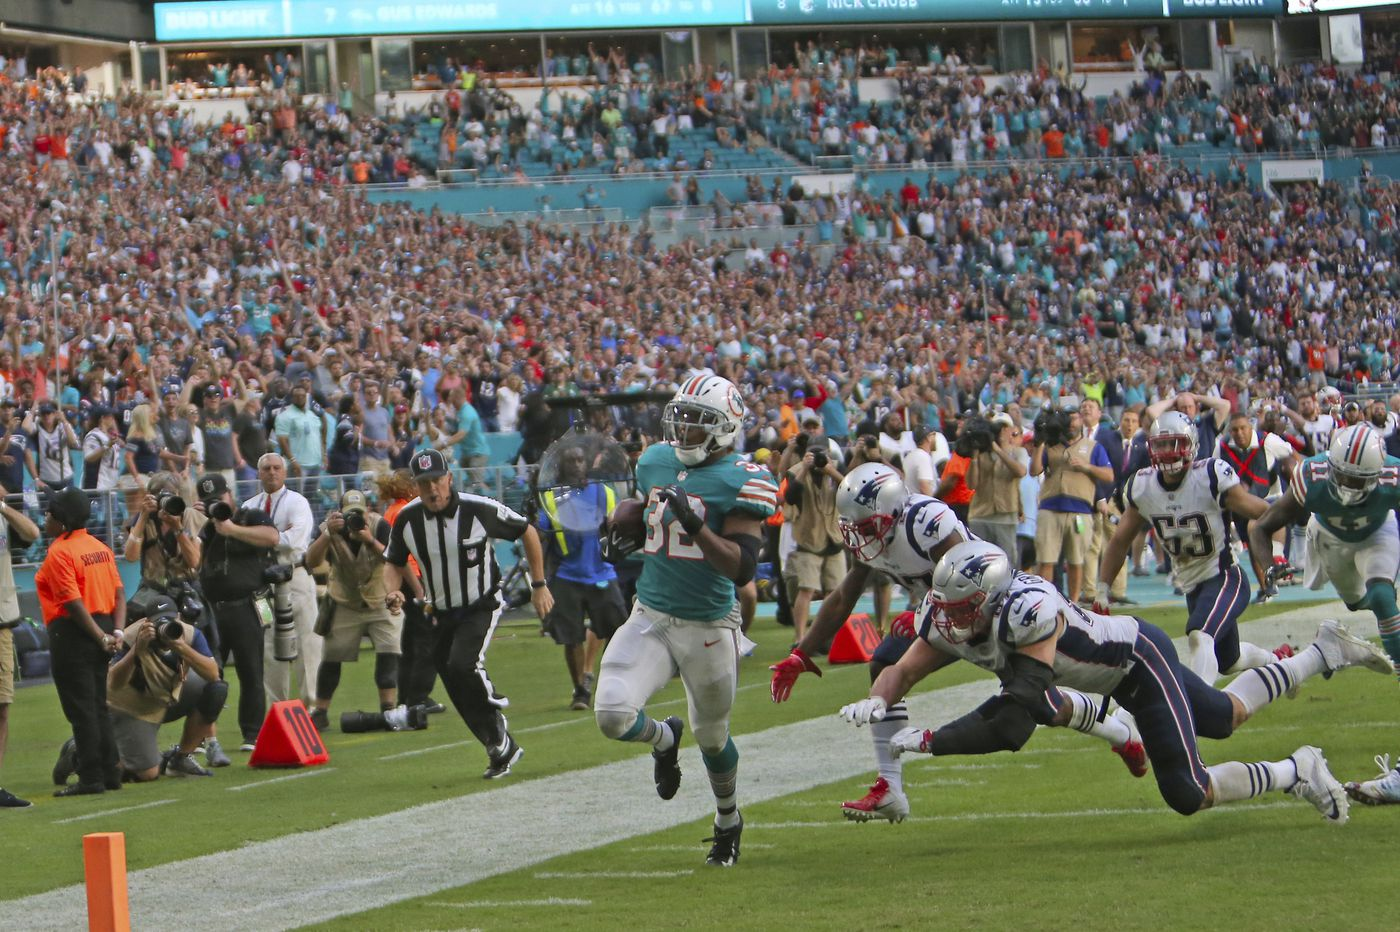 NFL Week 14 in review: Winners, losers, and watch the play of the year